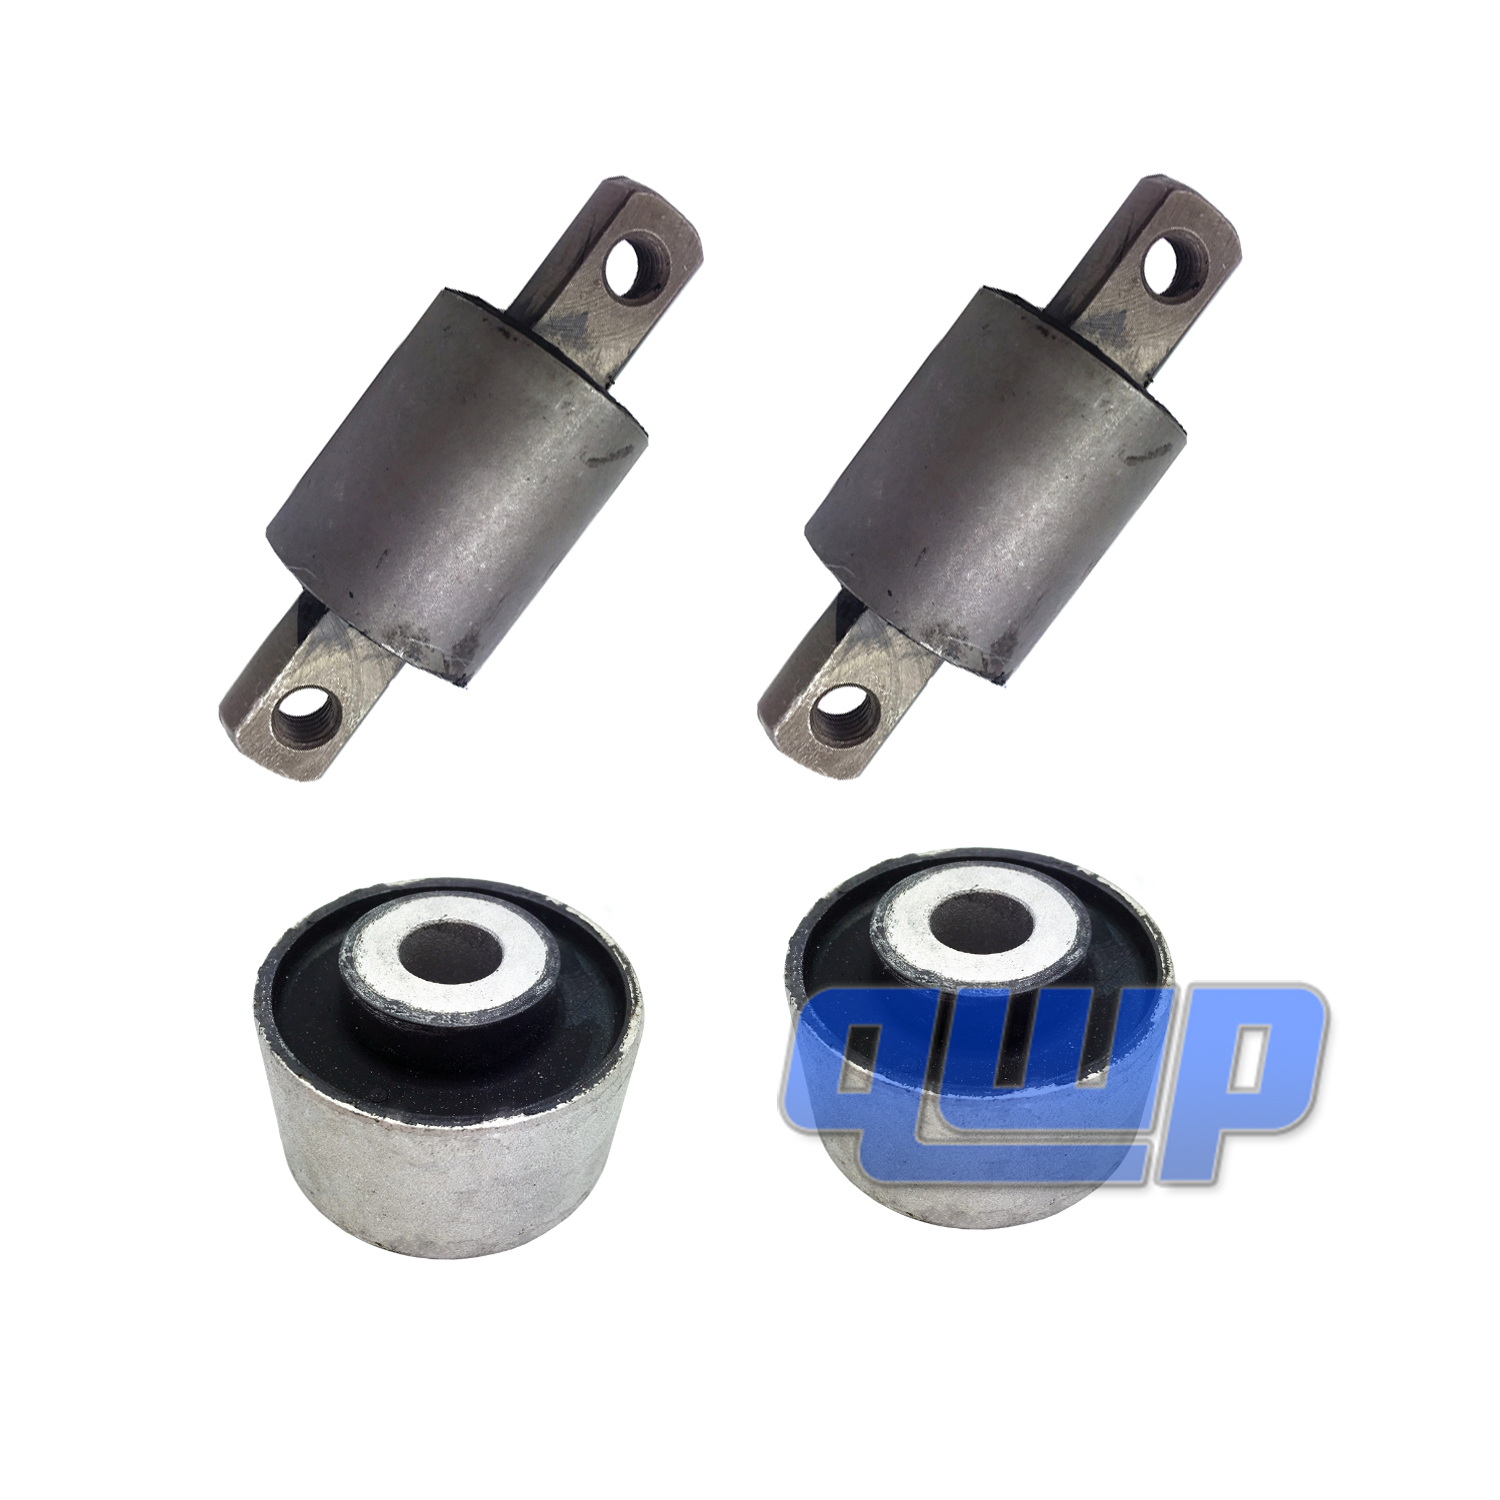 NEW Volvo S60 S80 V70 Set Of 2 Suspension Control Arm Bushings PRO PARTS 9465971